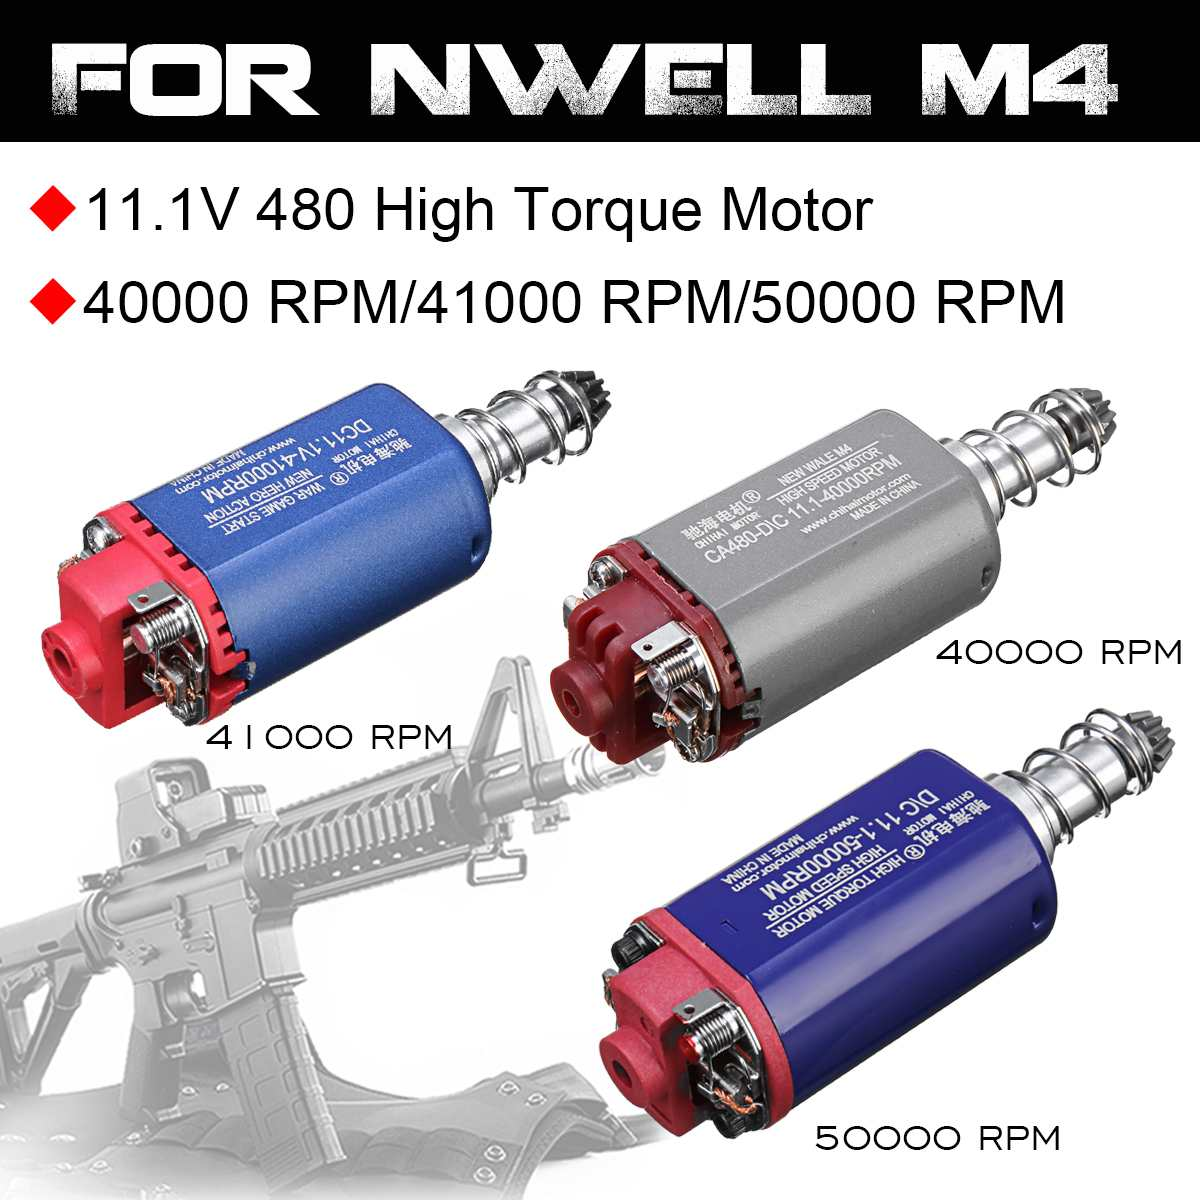 11.1V 40000/41000/50000RPM 480 High Torque Speed DC Motor For NWELL M4 AEG M110 M12 Gel Ball Blasters Toy Guns Replacement Acces